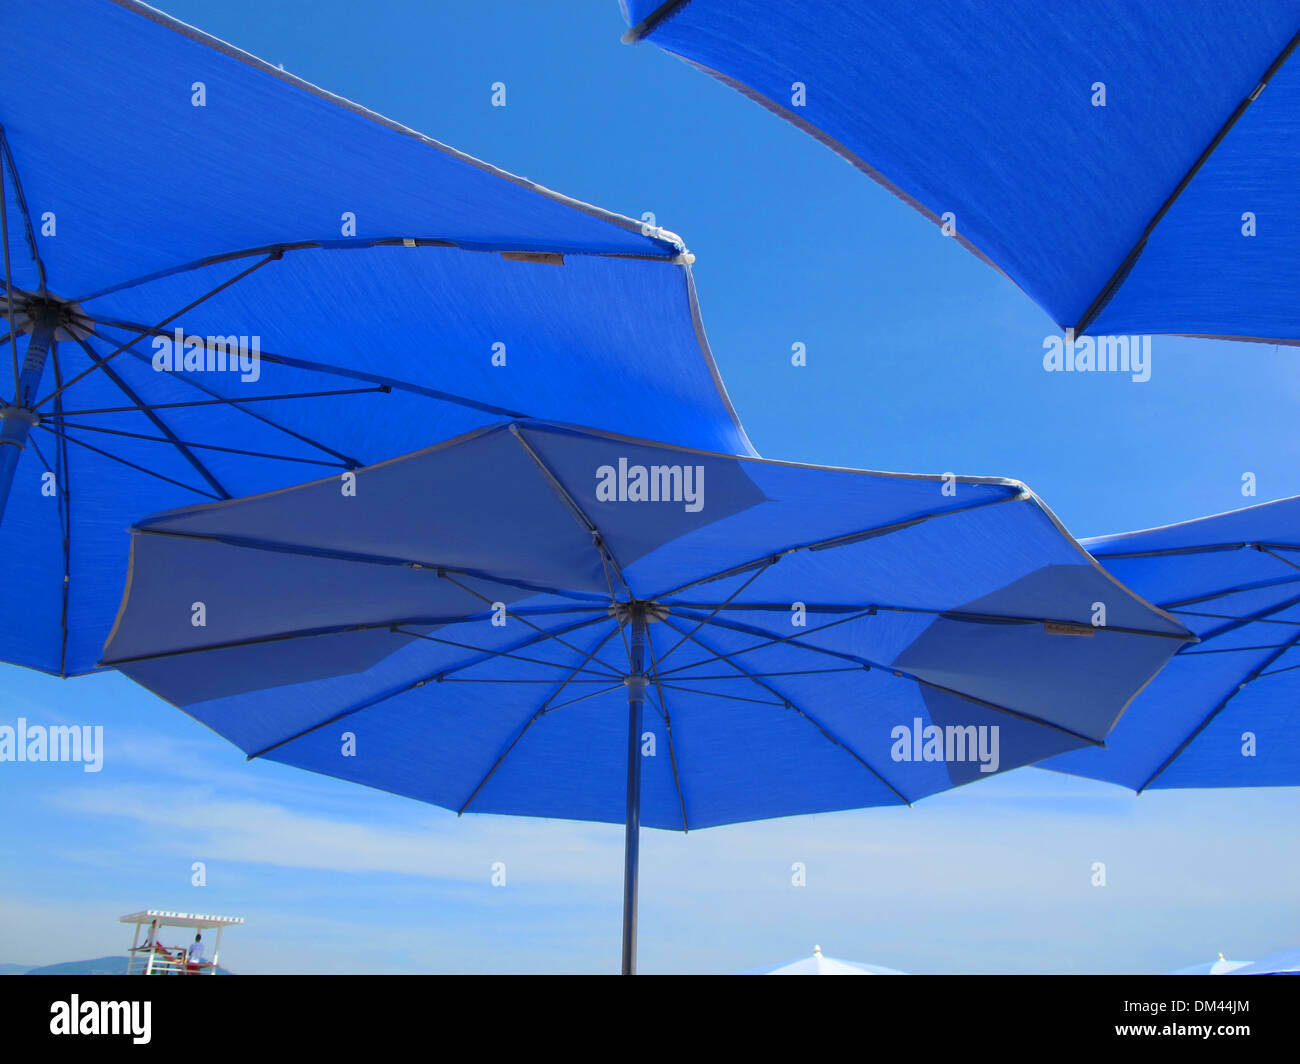 Provencal blue umbrellas in Nice, France - Stock Image